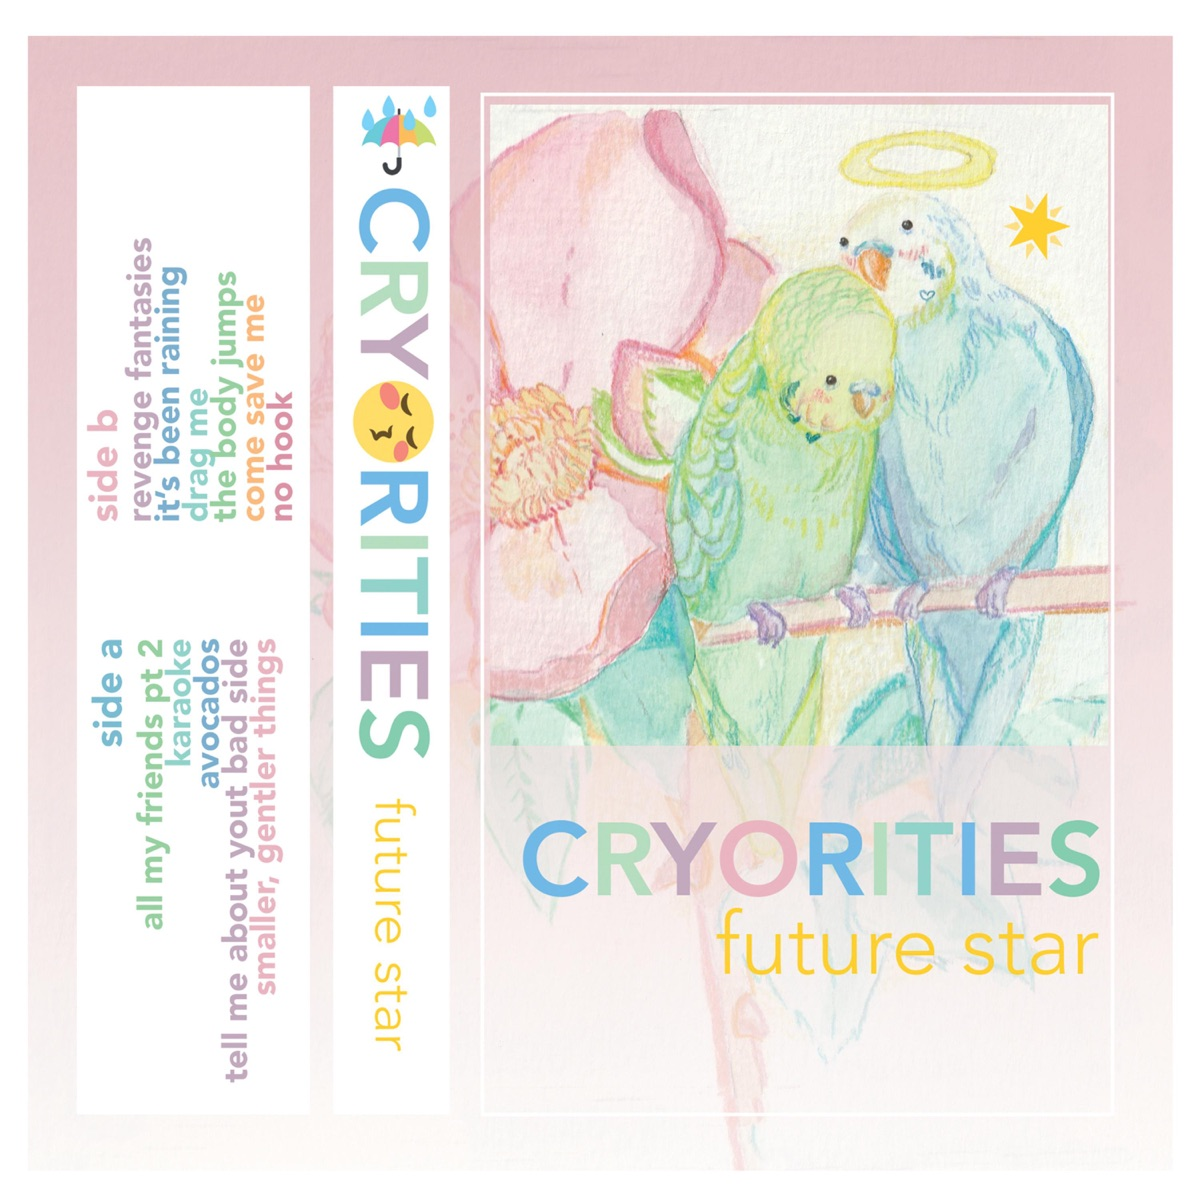 Cryorities Future Star CD cover